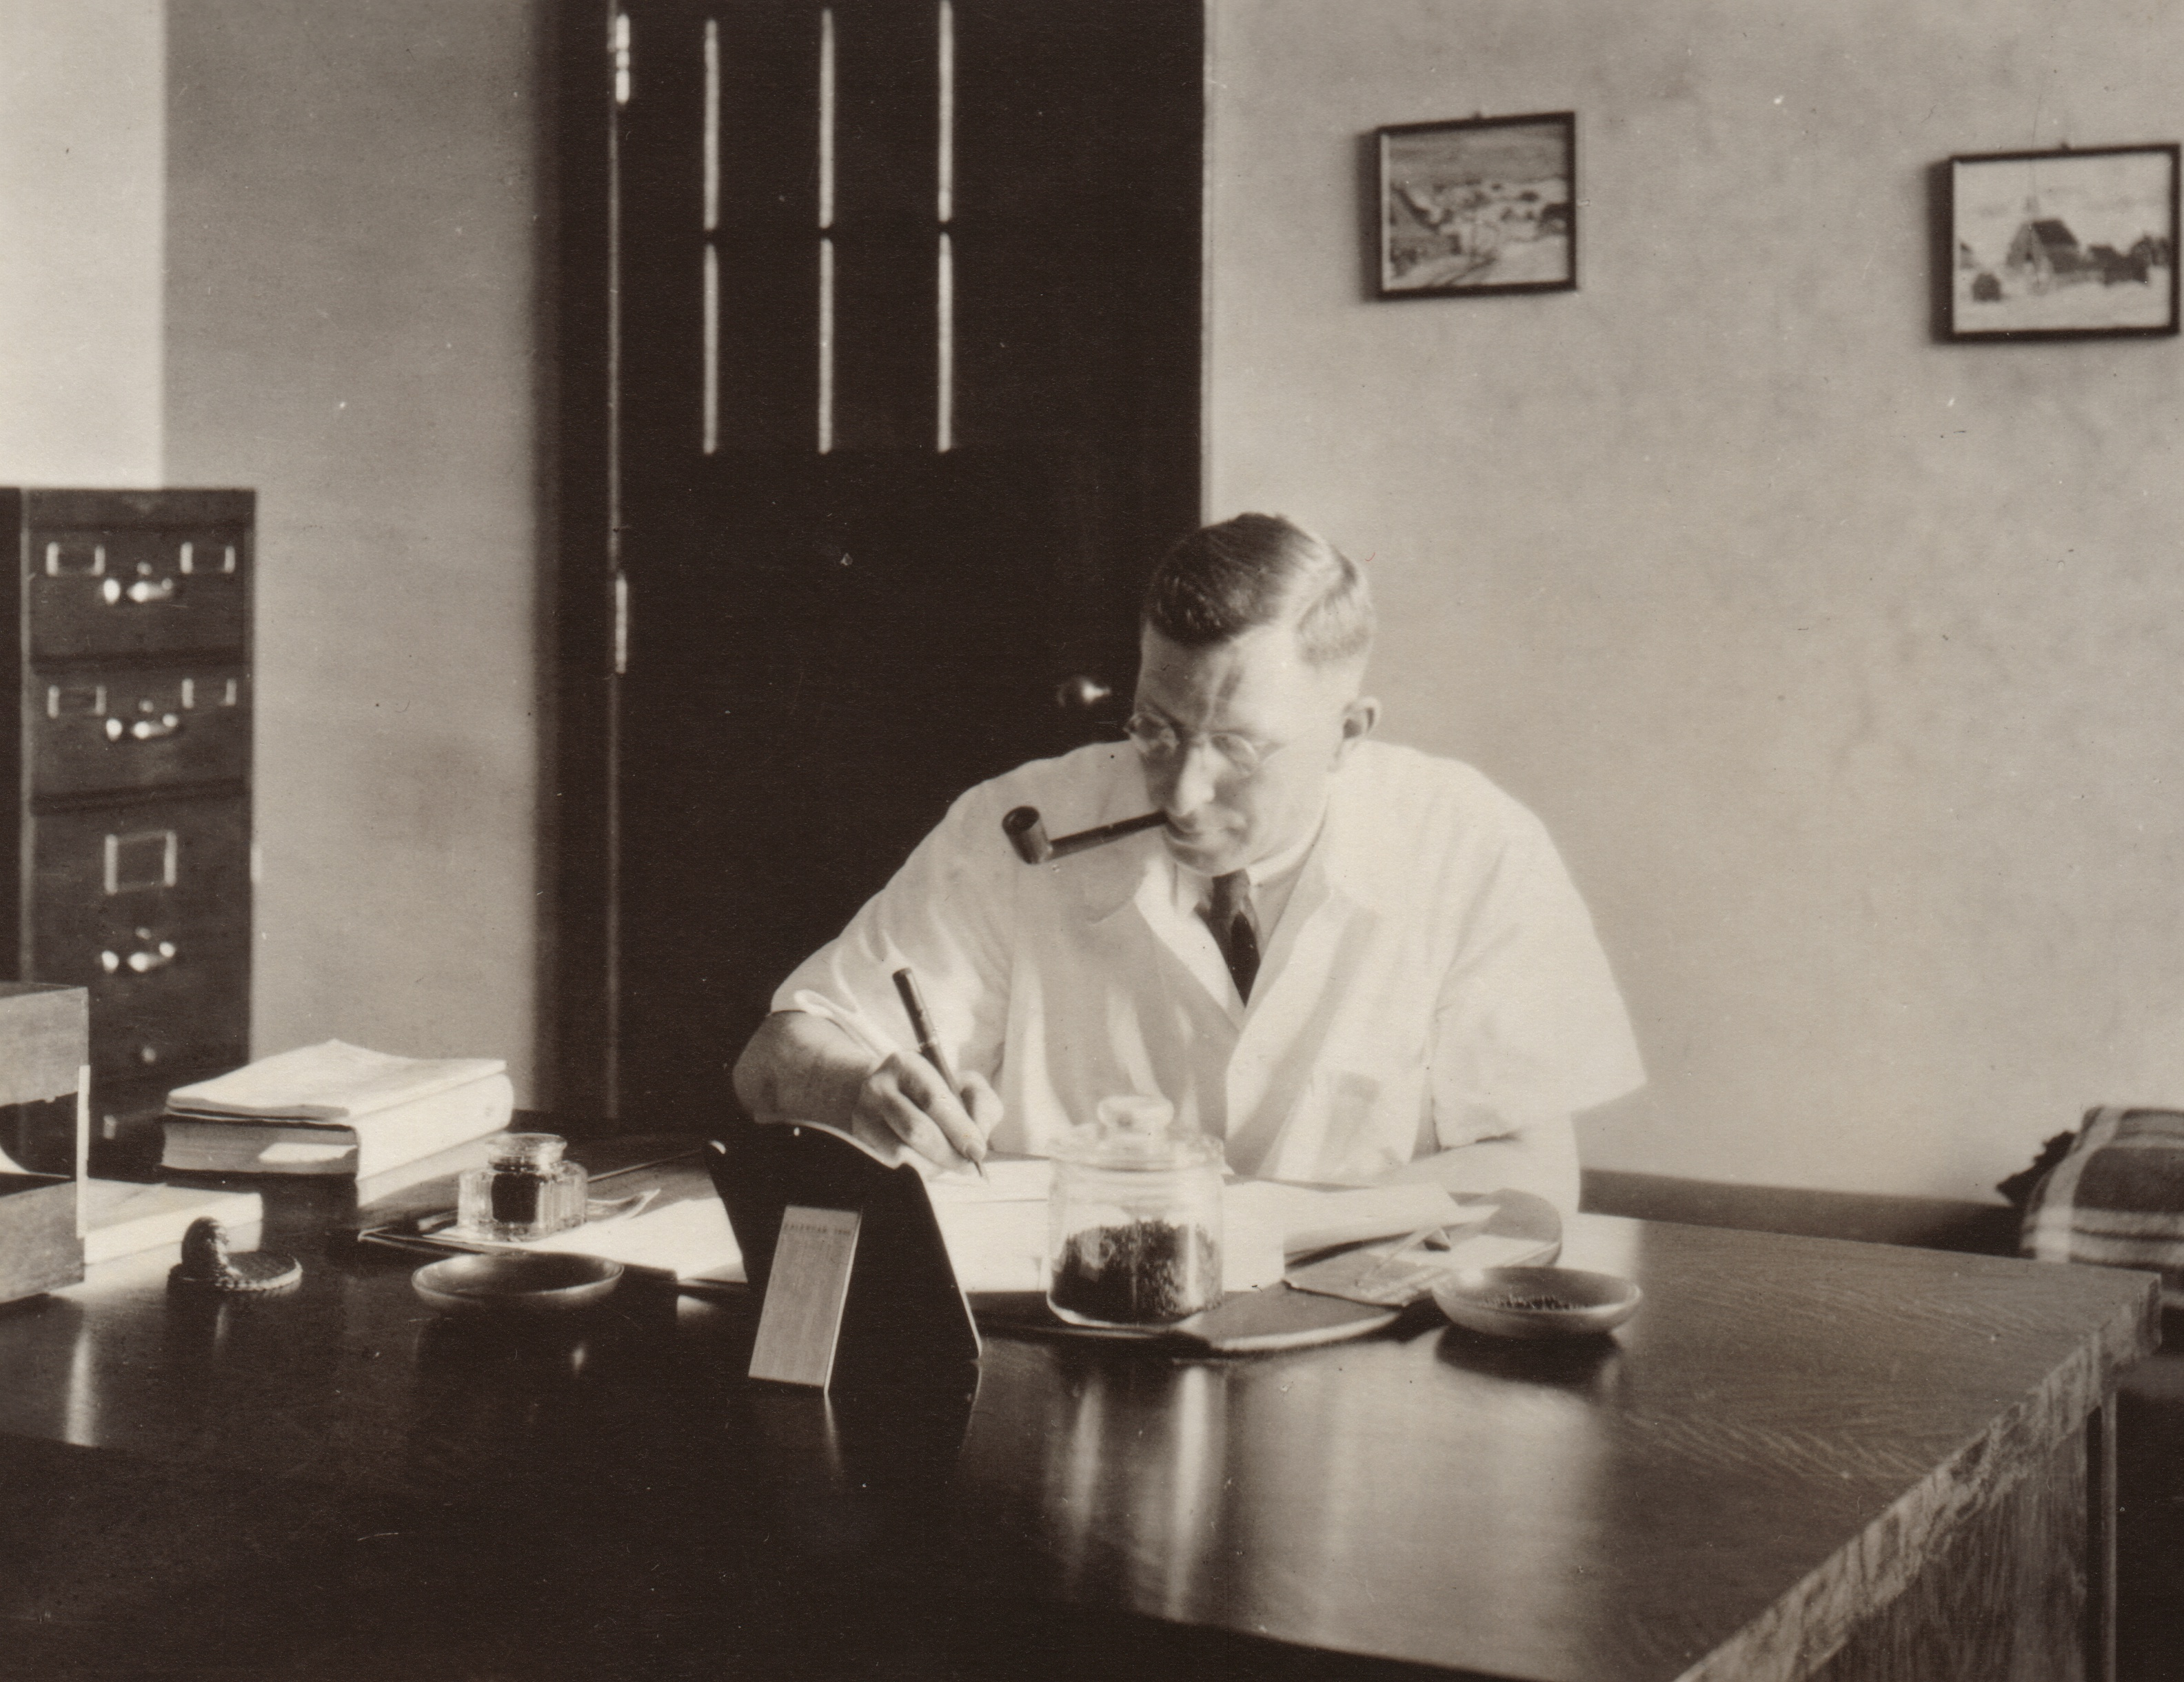 banting-at-desk-c1935.jpg